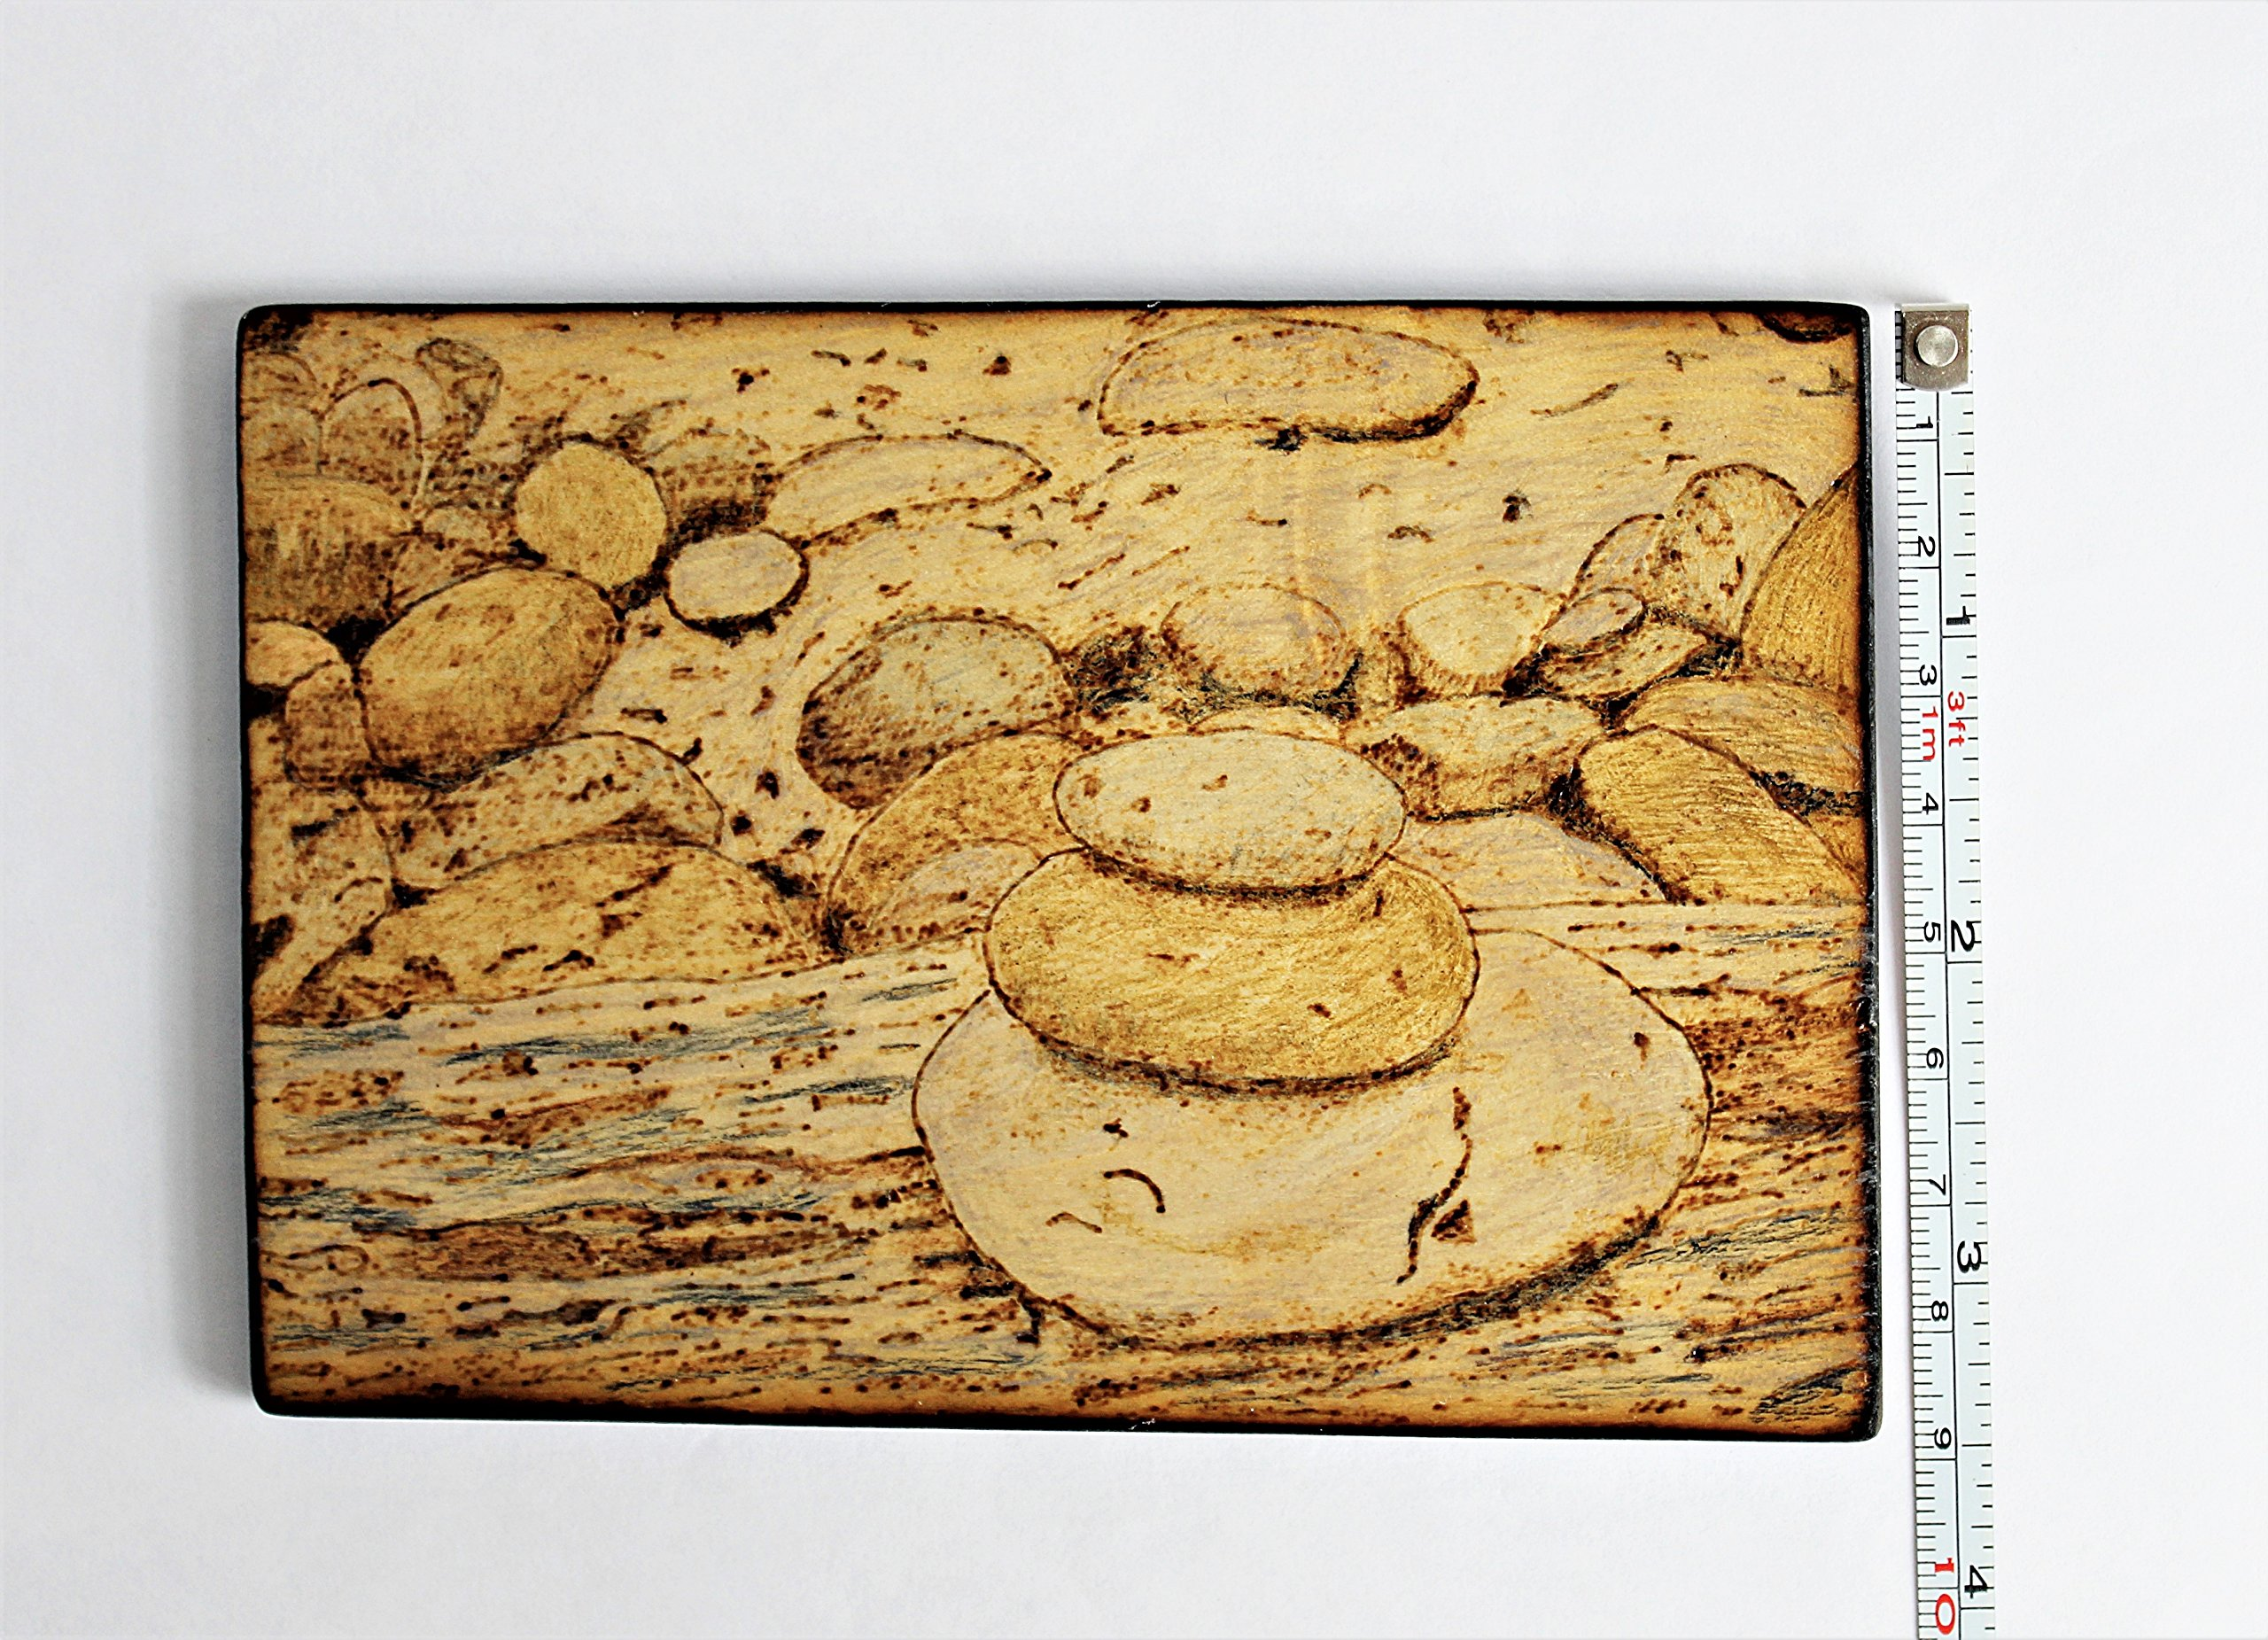 Wood Burned Cairn Stones Pyrography Small Woodburned Nature Rocky Shoreline Picture Desktop Art by Hendywood (Image #7)